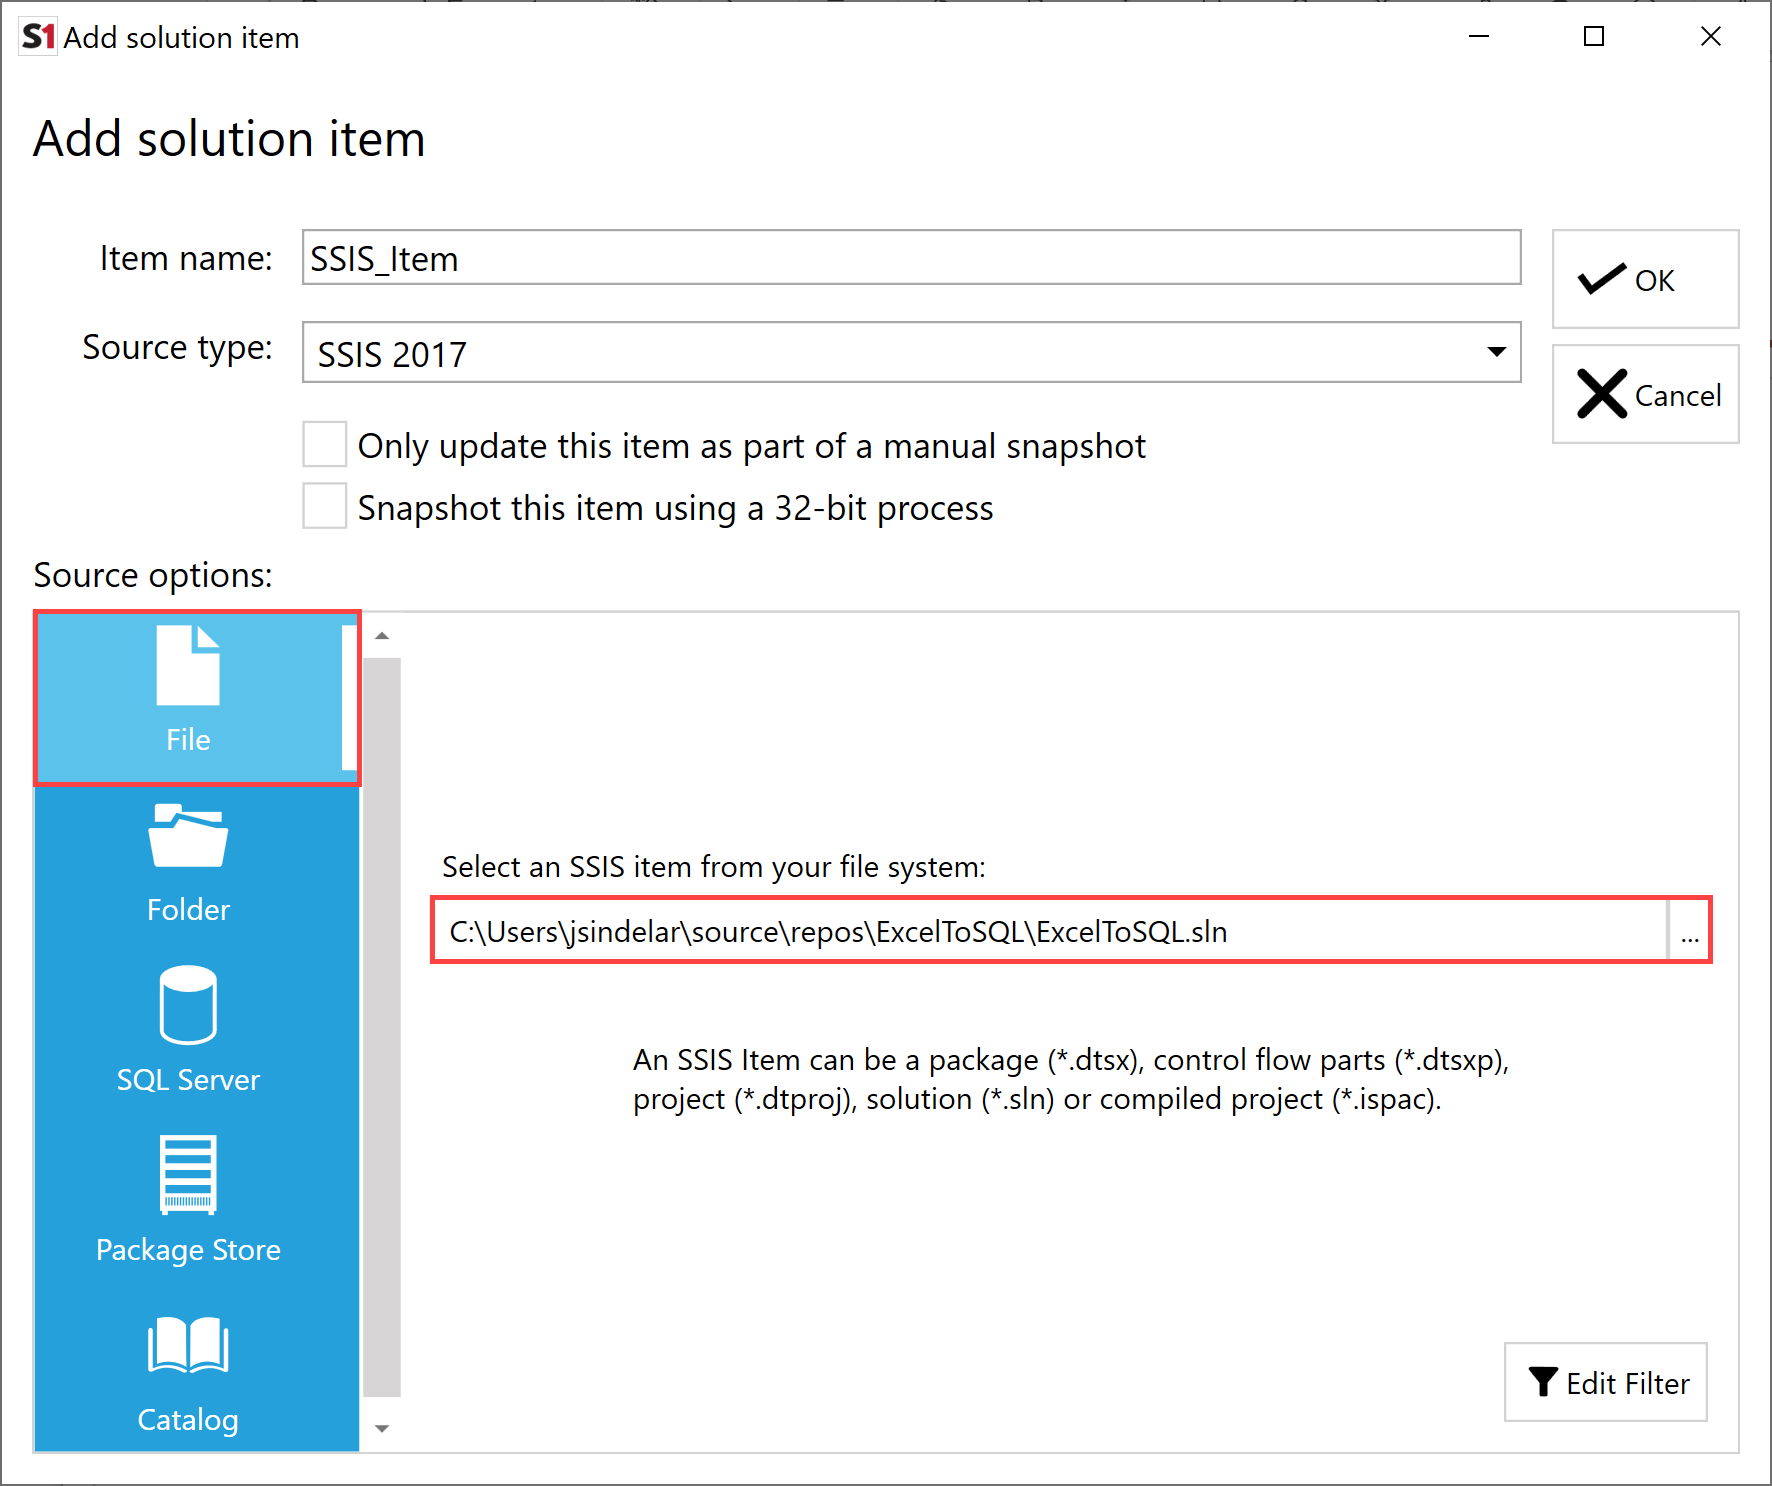 SentryOne Document Add Solution Item SSIS File